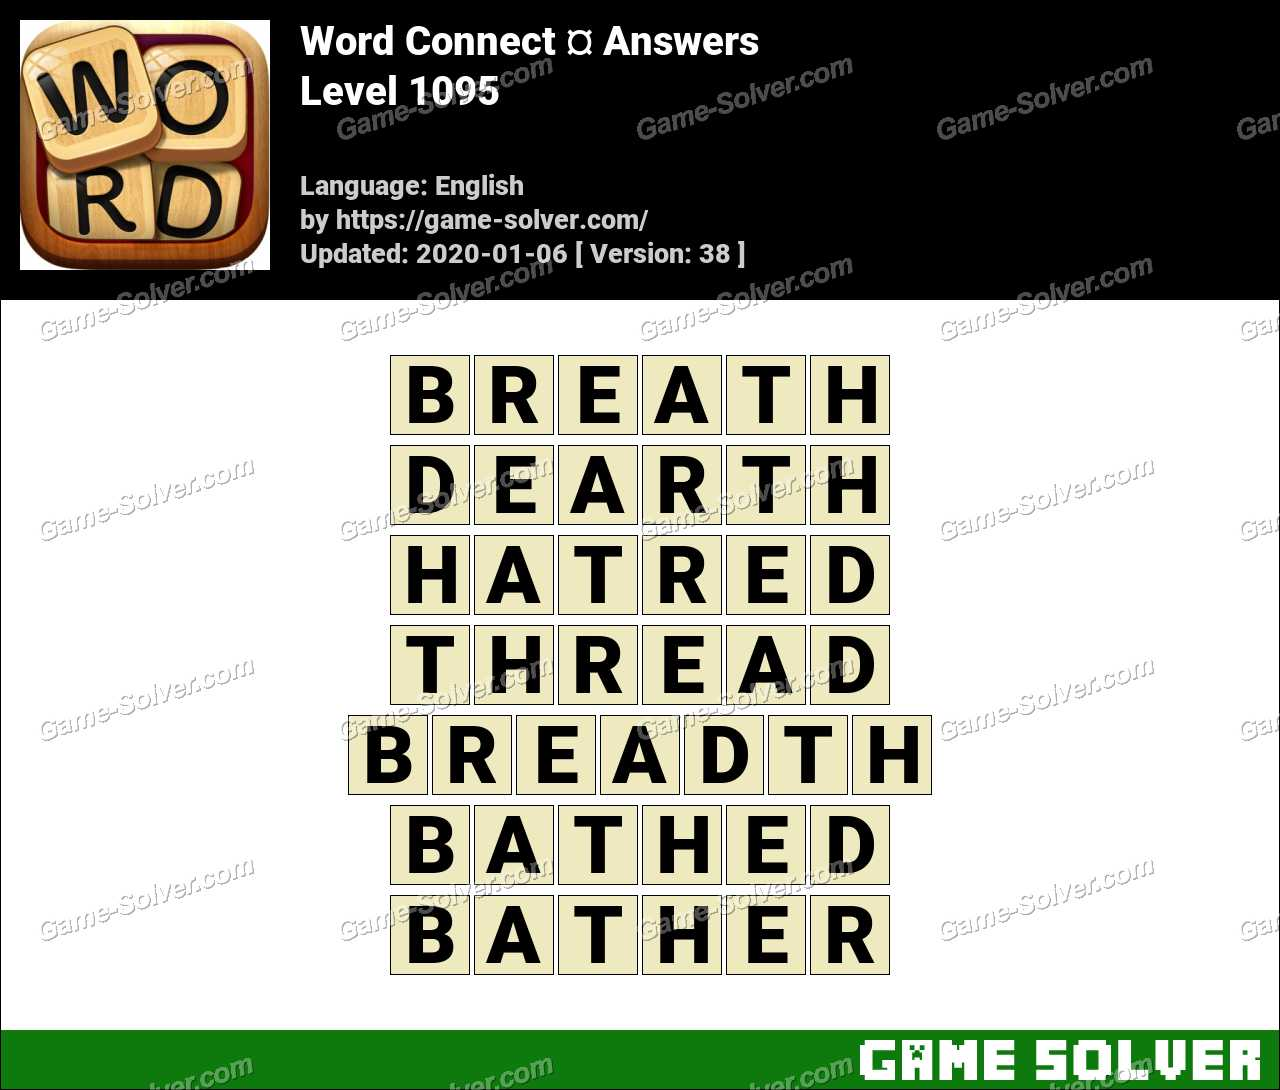 Word Connect Level 1095 Answers